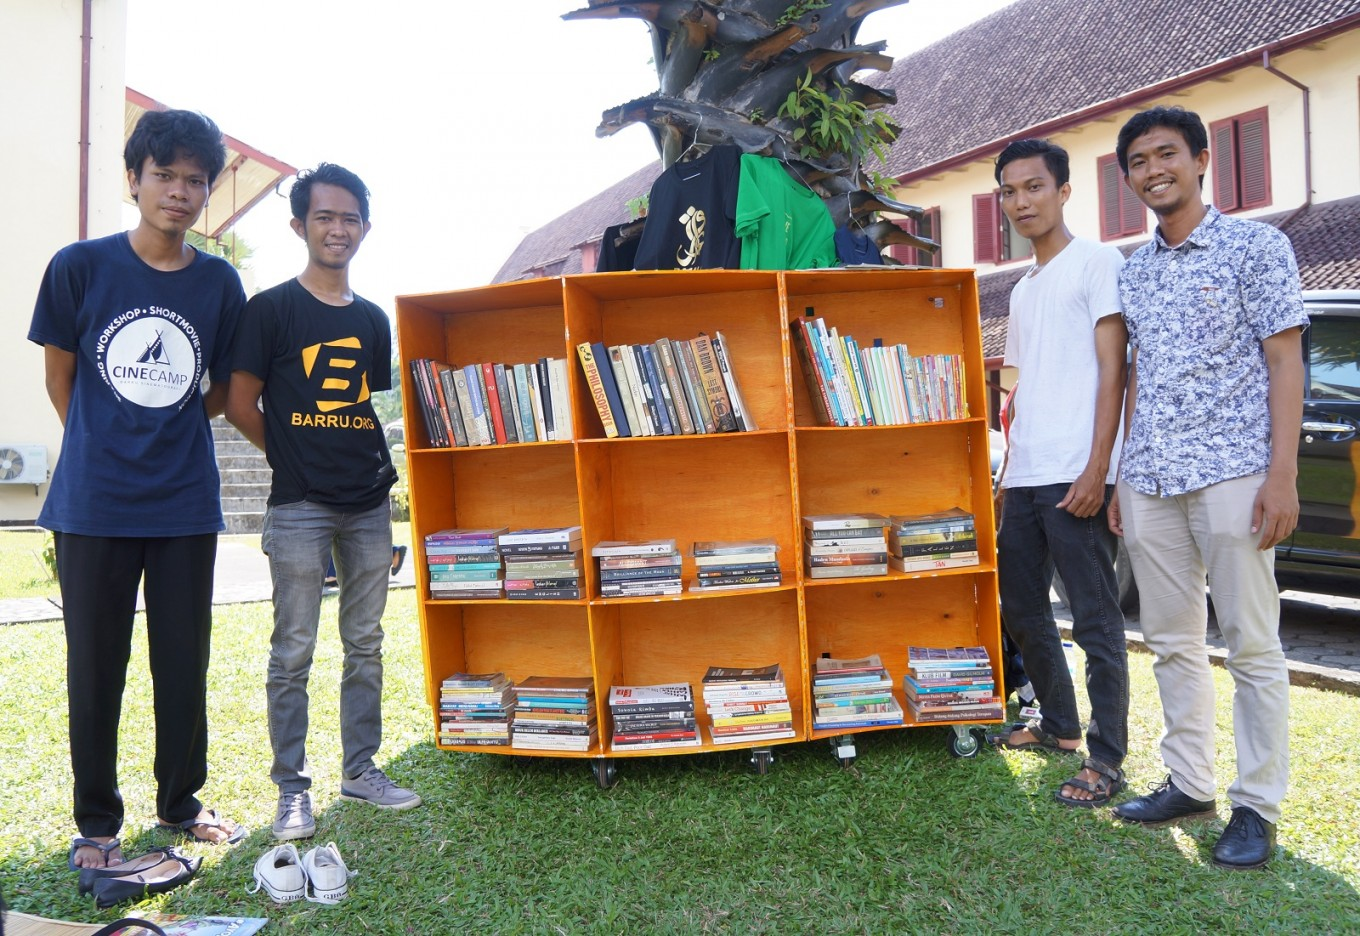 #BarruMembaca pop-up library to make reading fun again